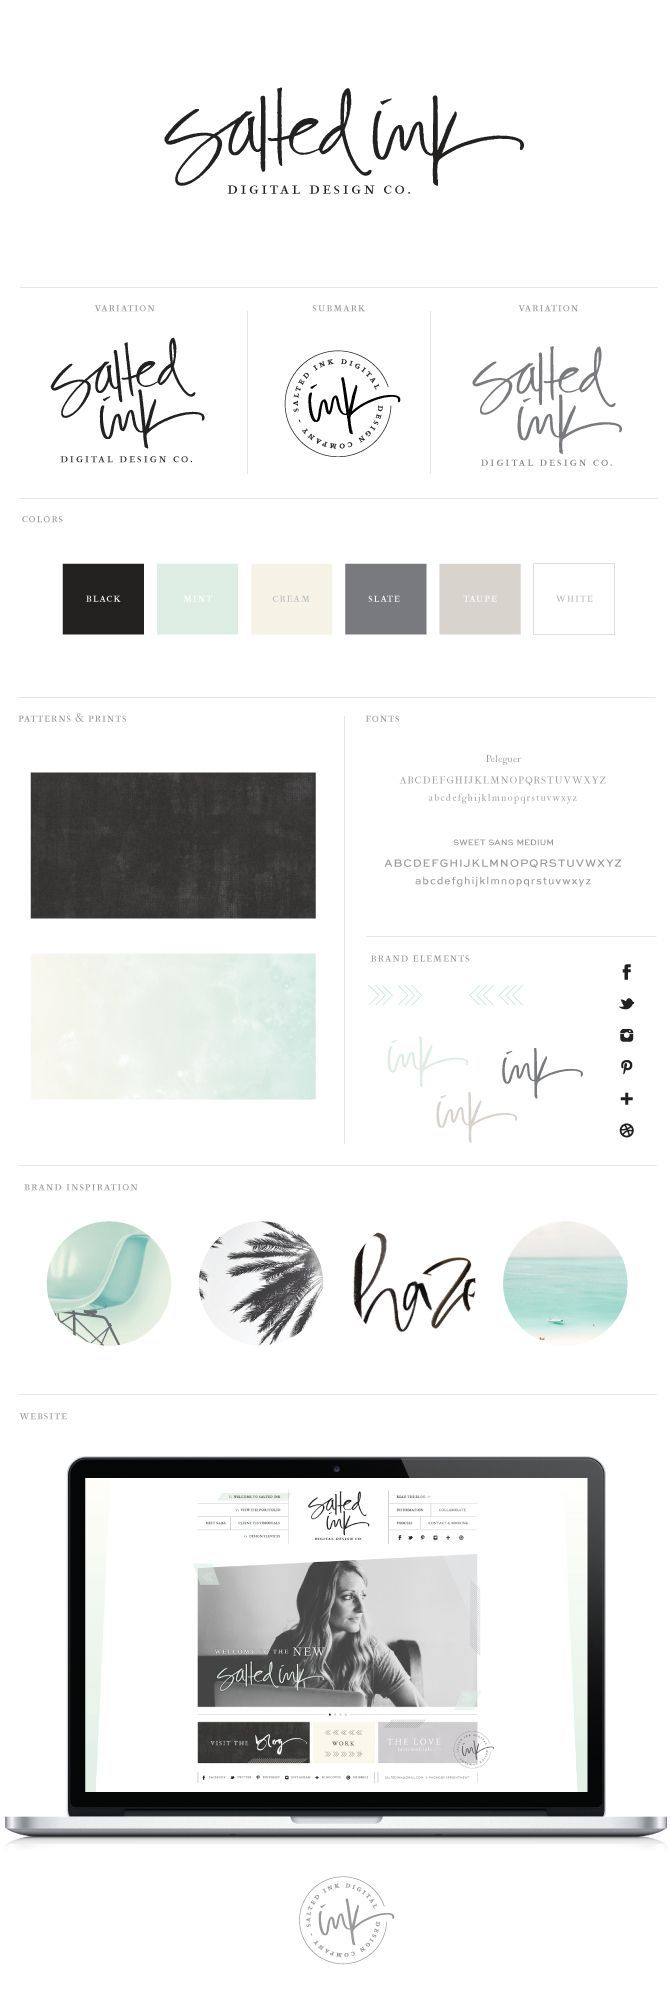 The New Salted Ink Brand Design | Branding By Salted Ink | visit the new site at www.saltedink.com | #brand #design #branding